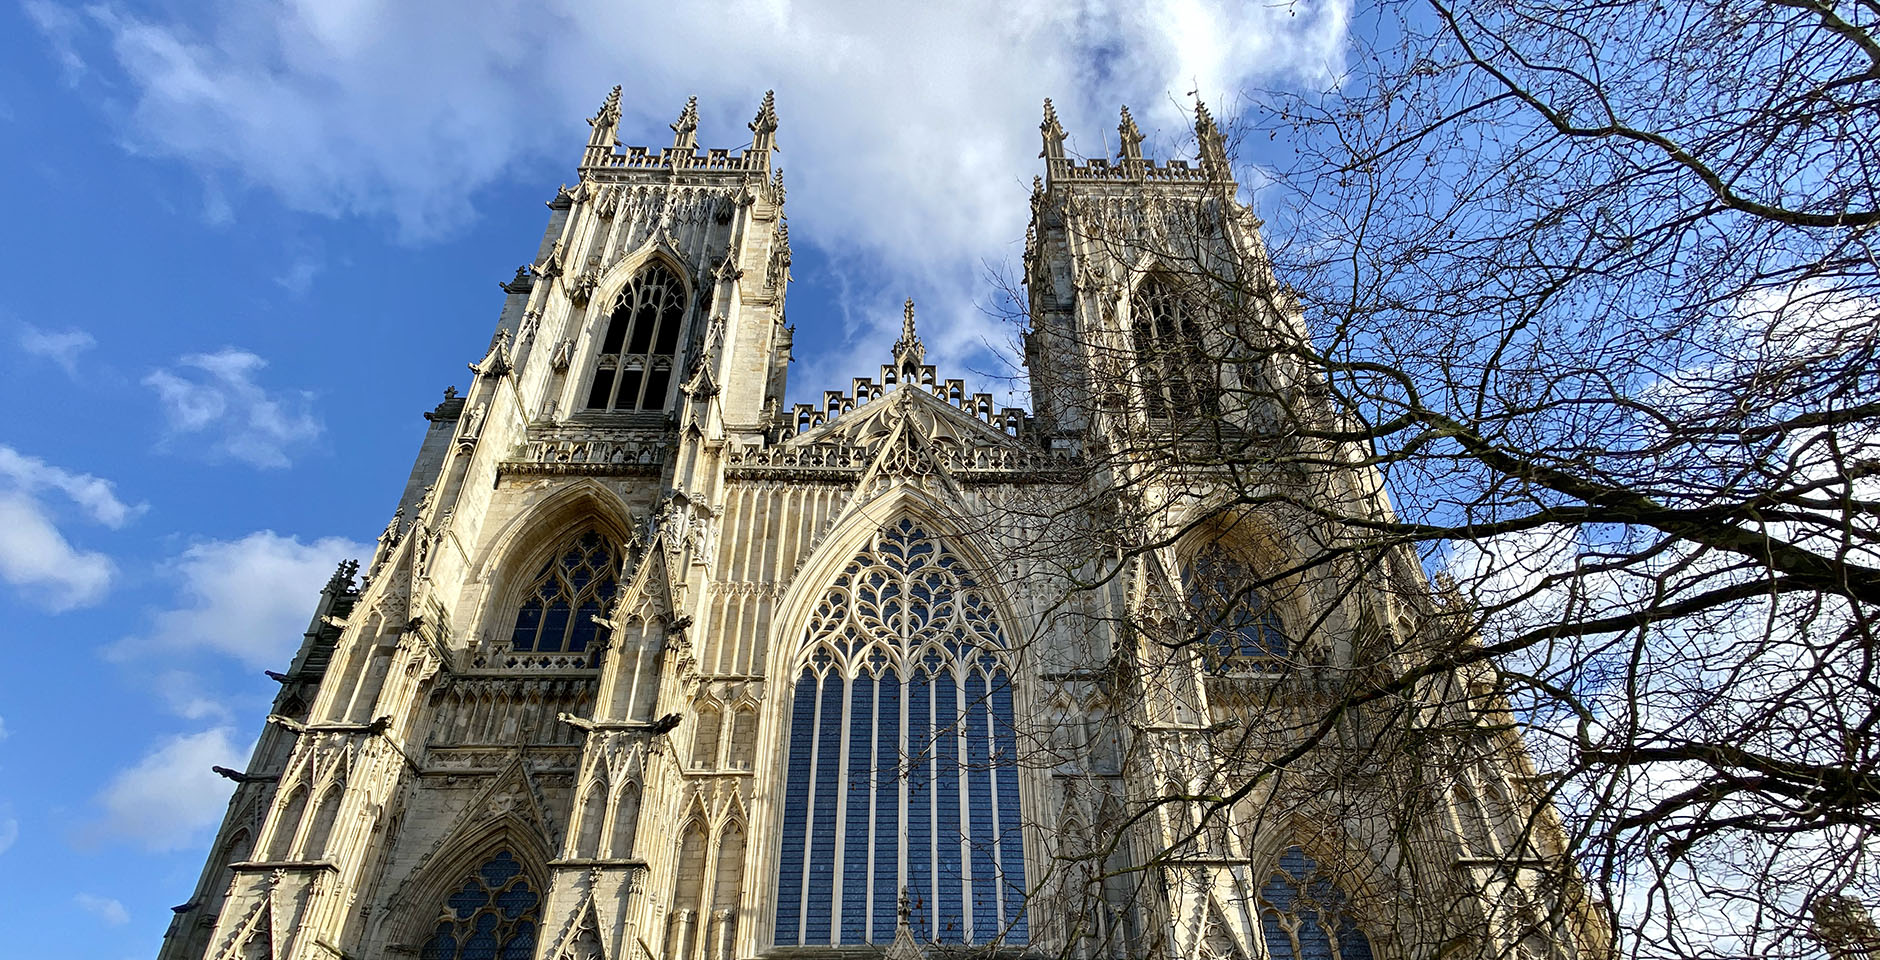 The famous Gothic cathedral York Minster